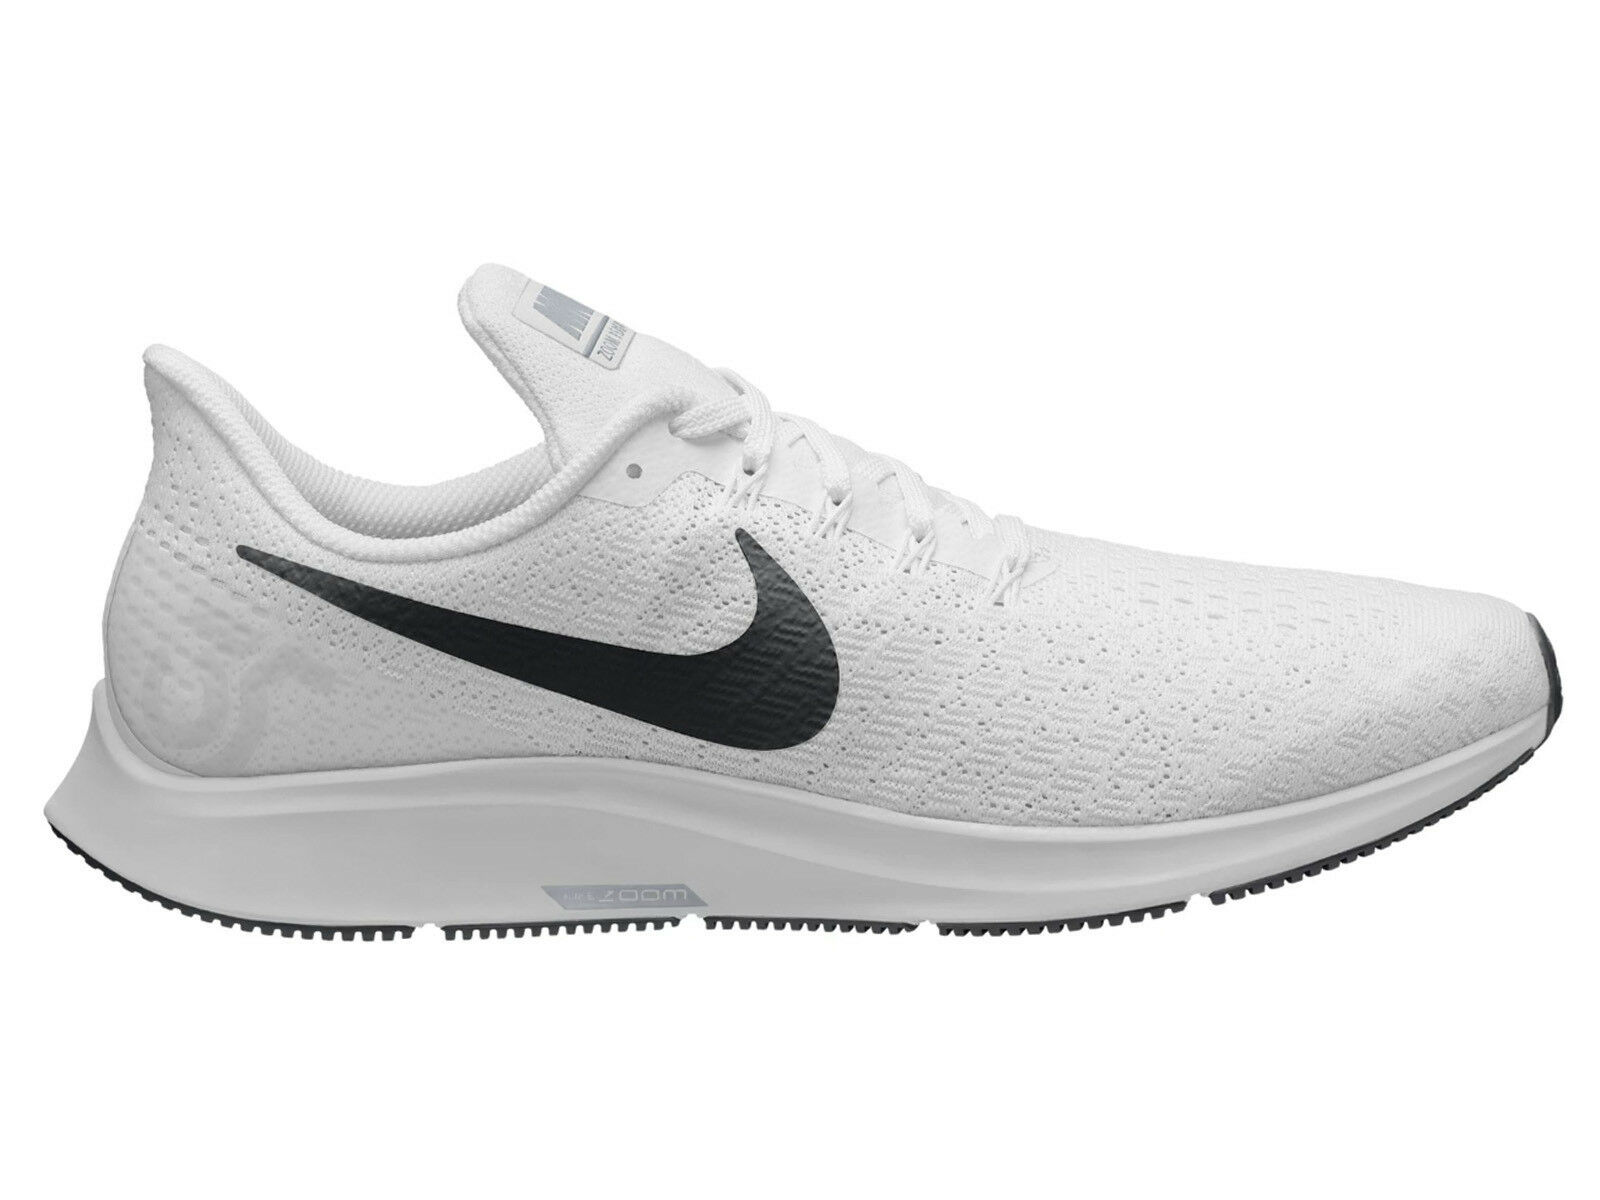 Men's Nike Air Zoom Pegasus 35 Running Shoes Trainers White/Black/Pure Platinum